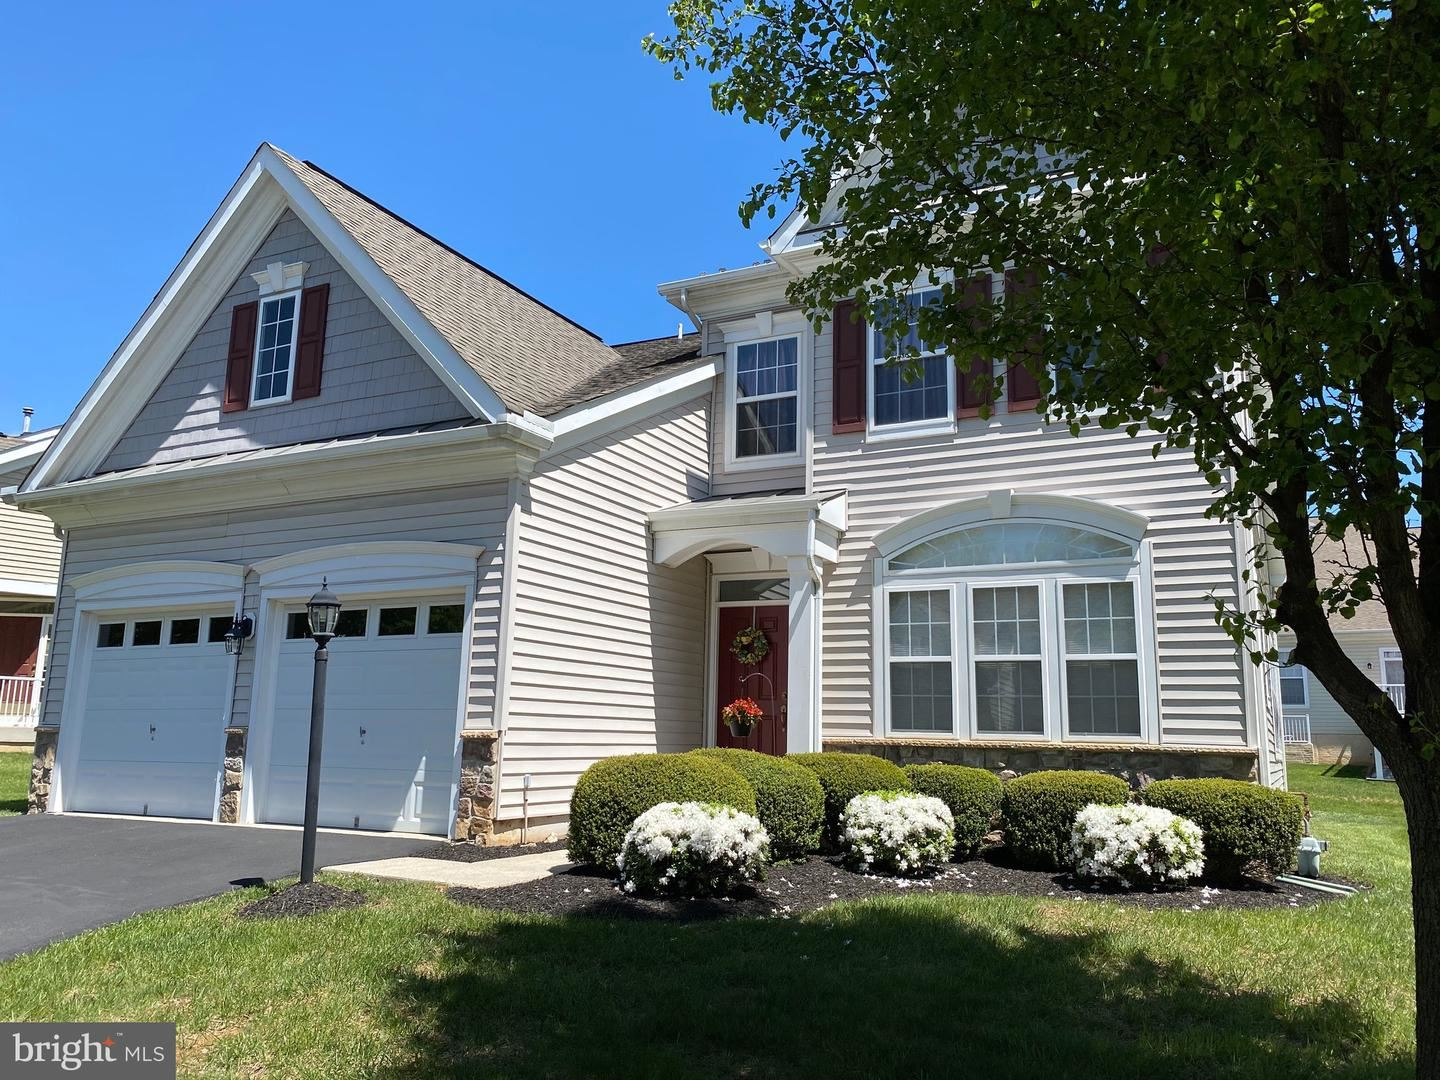 213 SMARTY JONES TER, Havre de Grace, MD 21078 - MLS#: MDHR259728